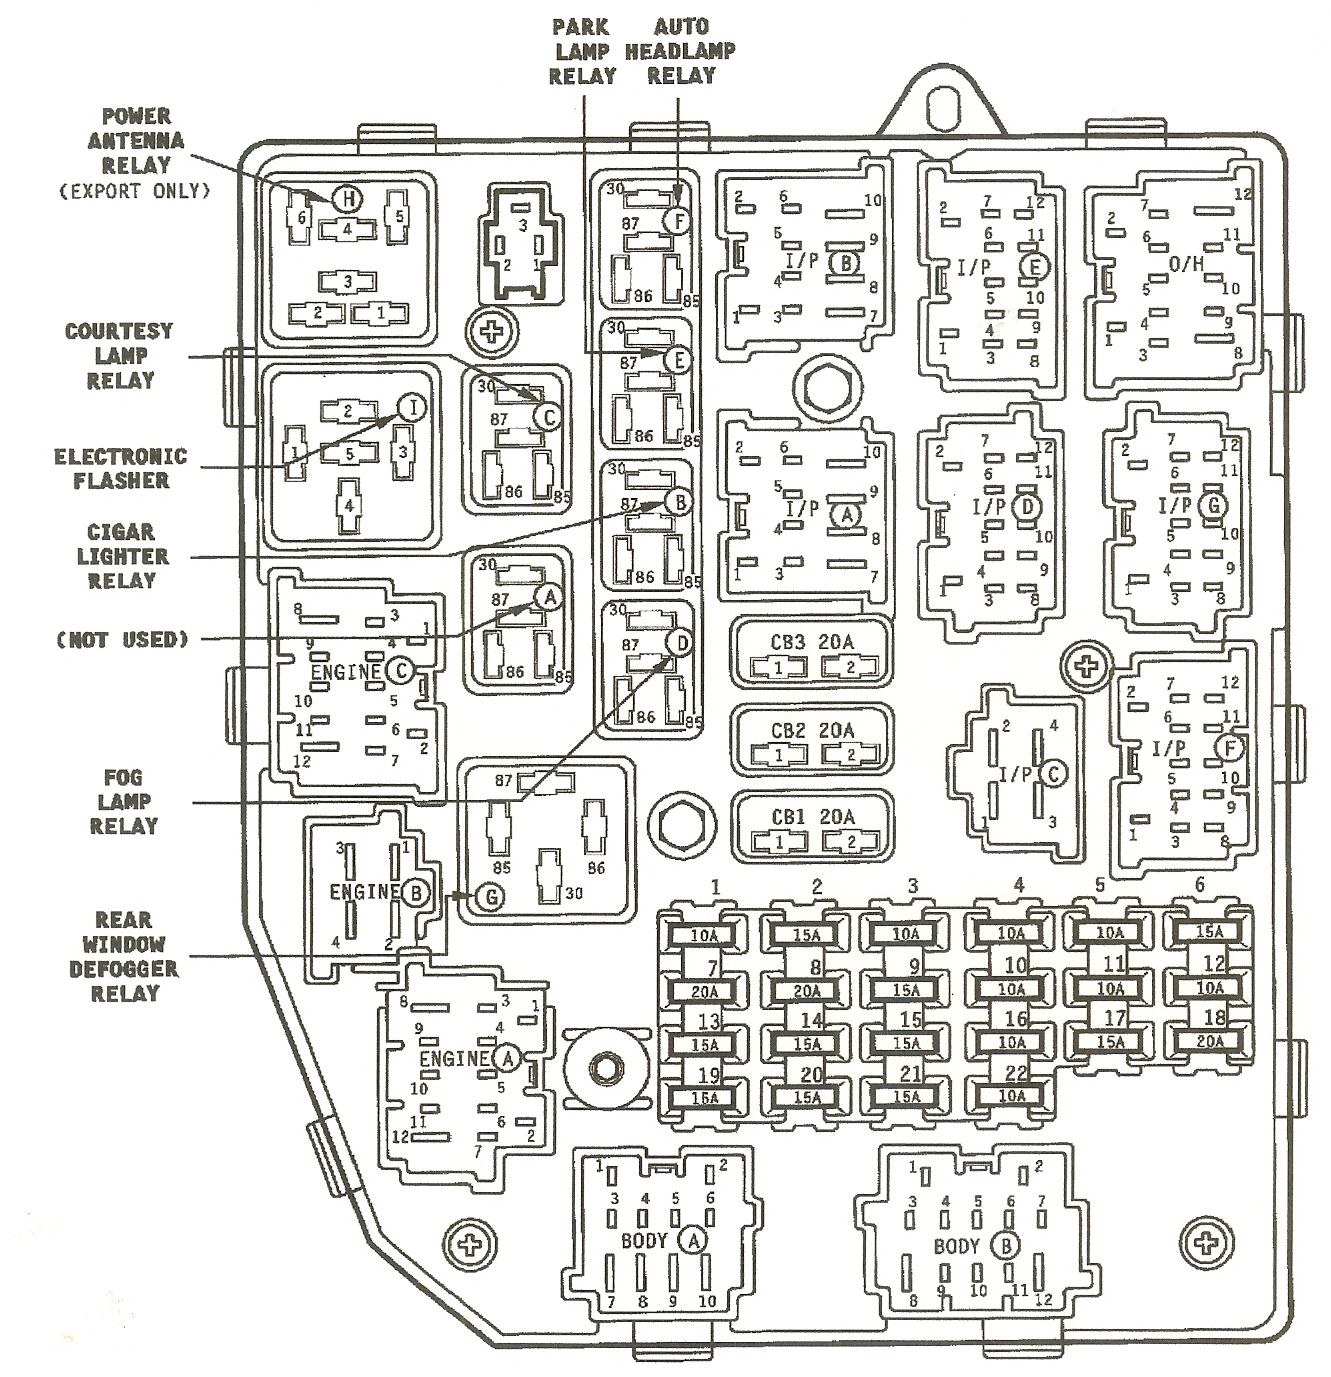 medium resolution of jeep zj fuse box diagram simple wiring schema 1996 jeep cherokee fuse diagram jeep zj fuse diagram